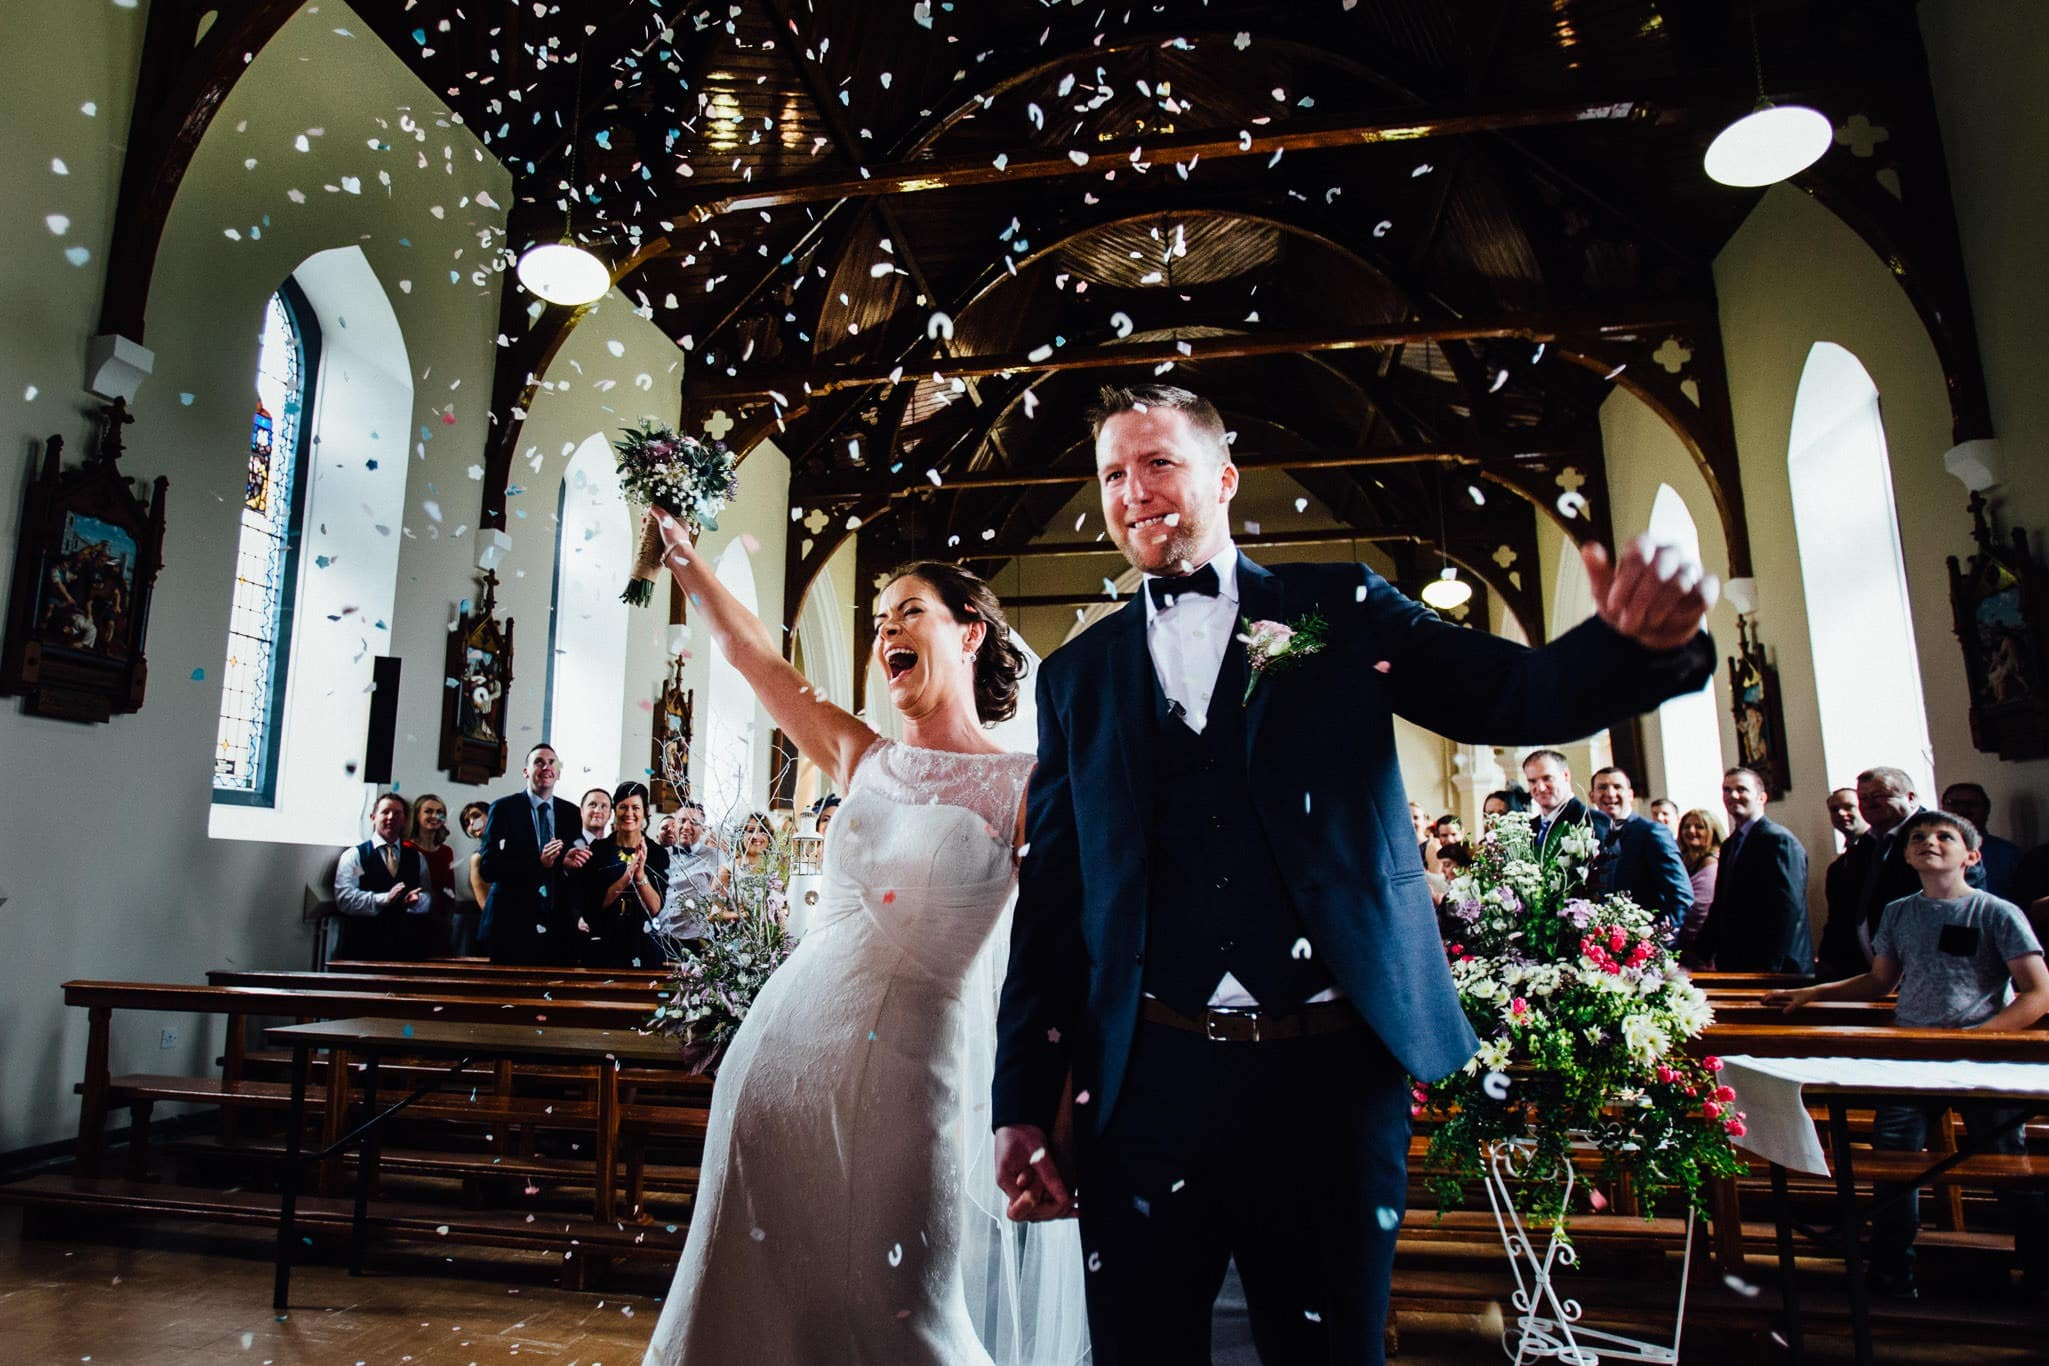 Bride and groom get confetti thrown at them on the way out of the church